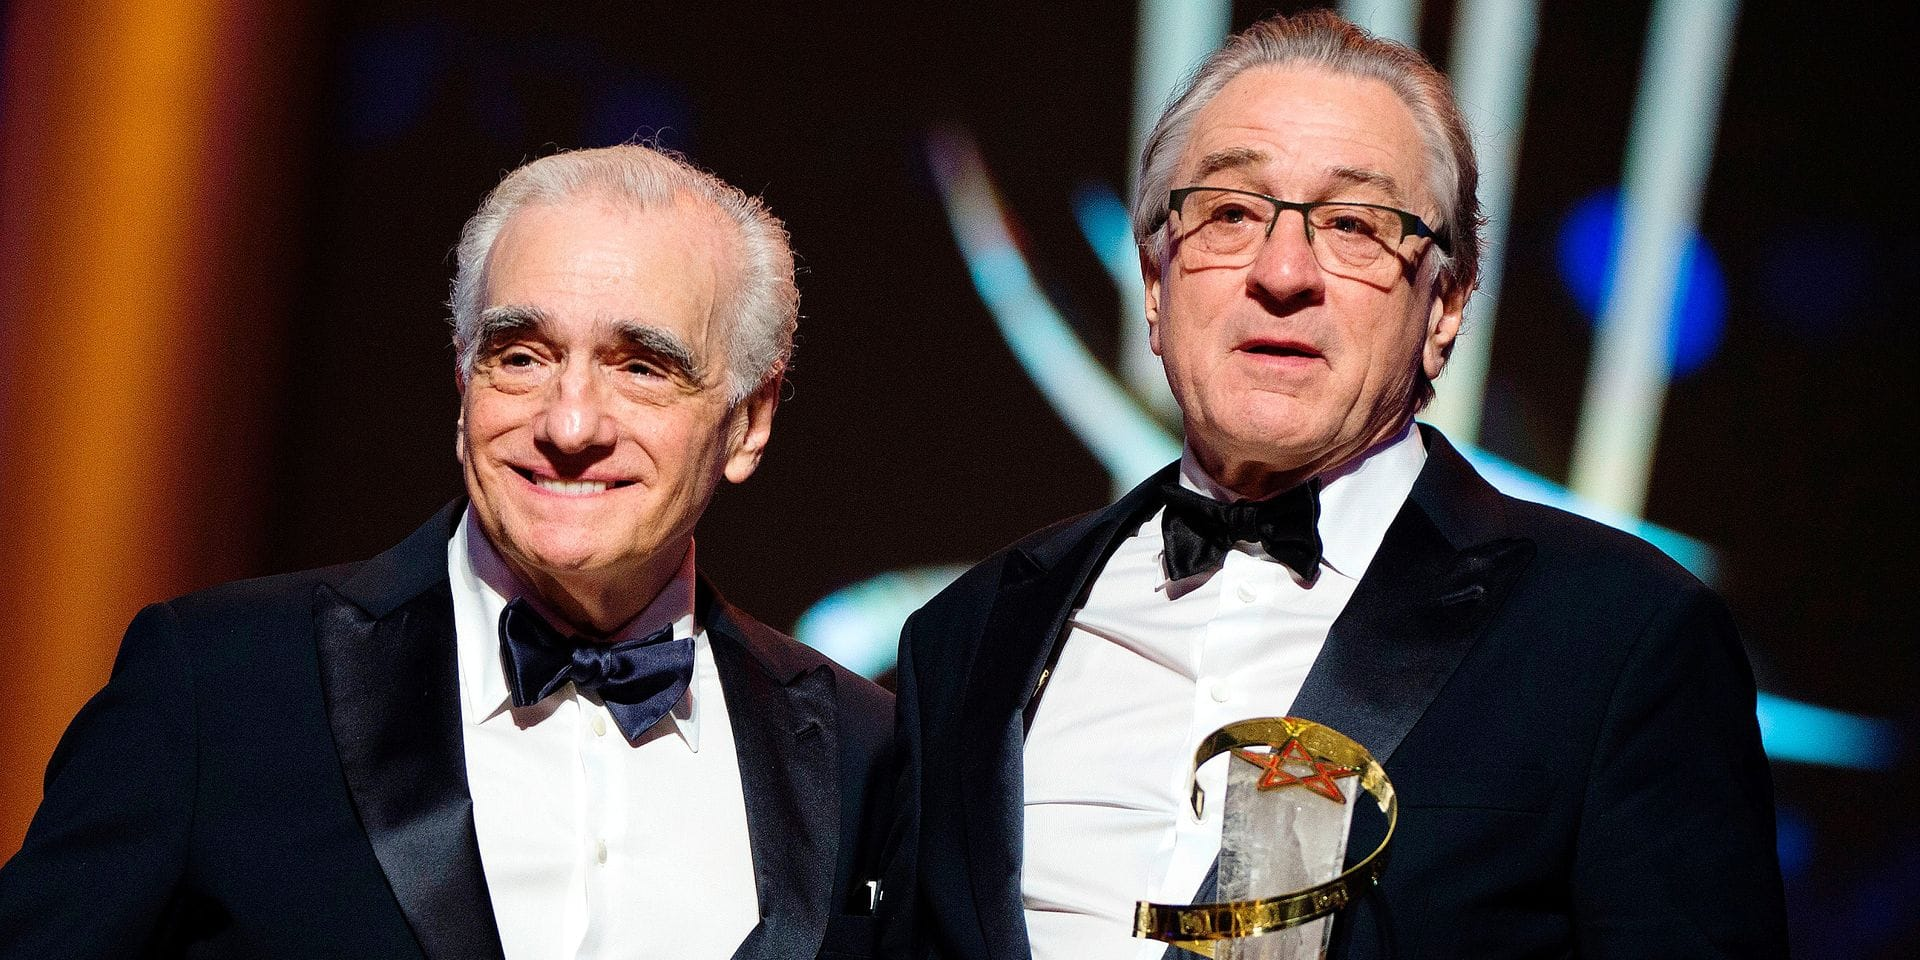 US actor Robert de Niro (R) poses with a Tribute award, next to US Director Martin Scorsese during the 17th Marrakech International Film Festival on December 1, 2018. (Photo by FADEL SENNA / AFP)